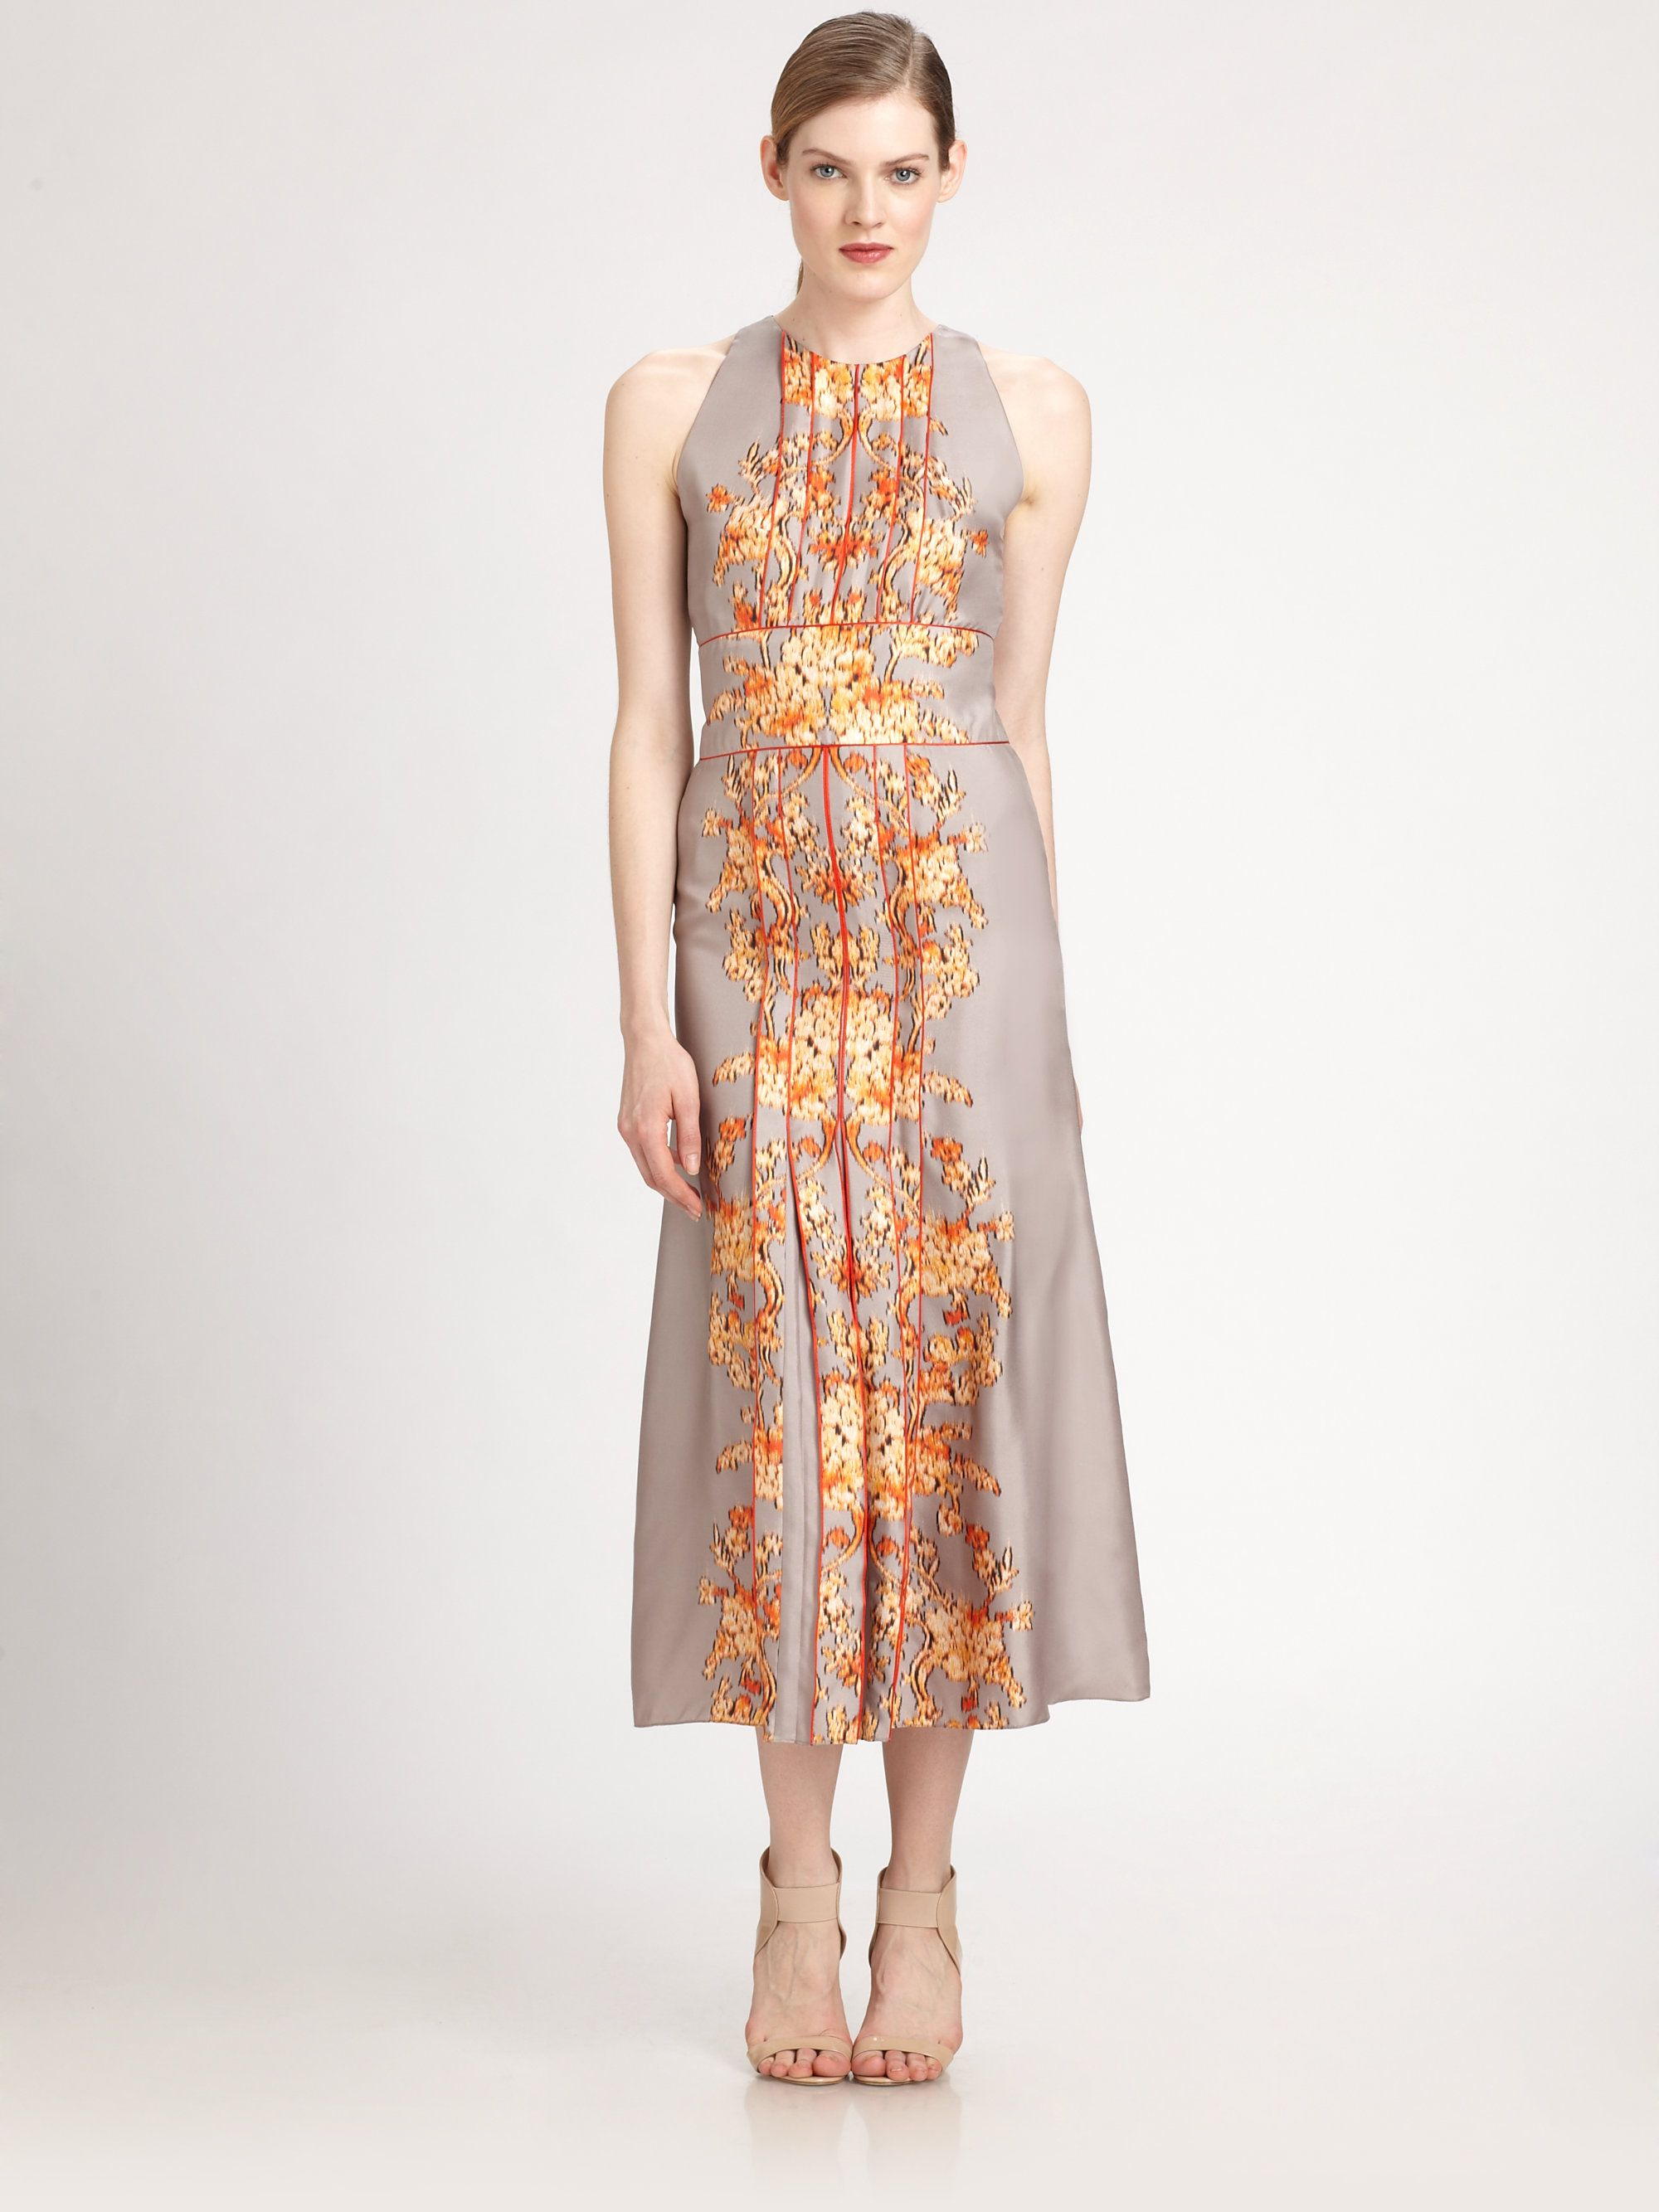 Carolina herrera silk baroque dress baroque style pinterest